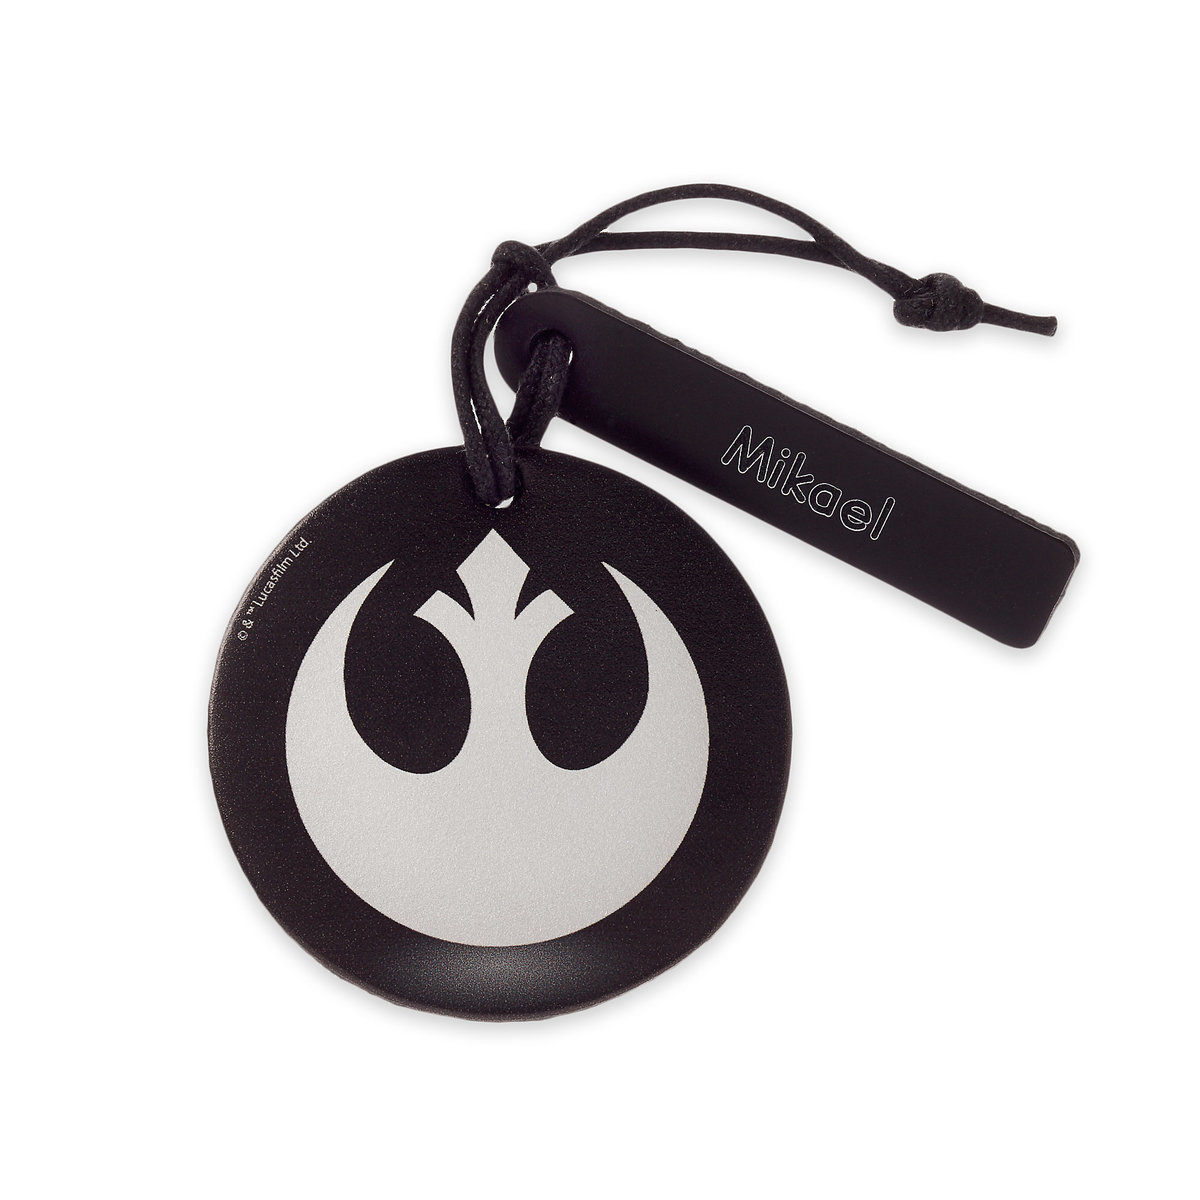 Disney Personalizable Leather Bag Tag - Star Wars Resistance